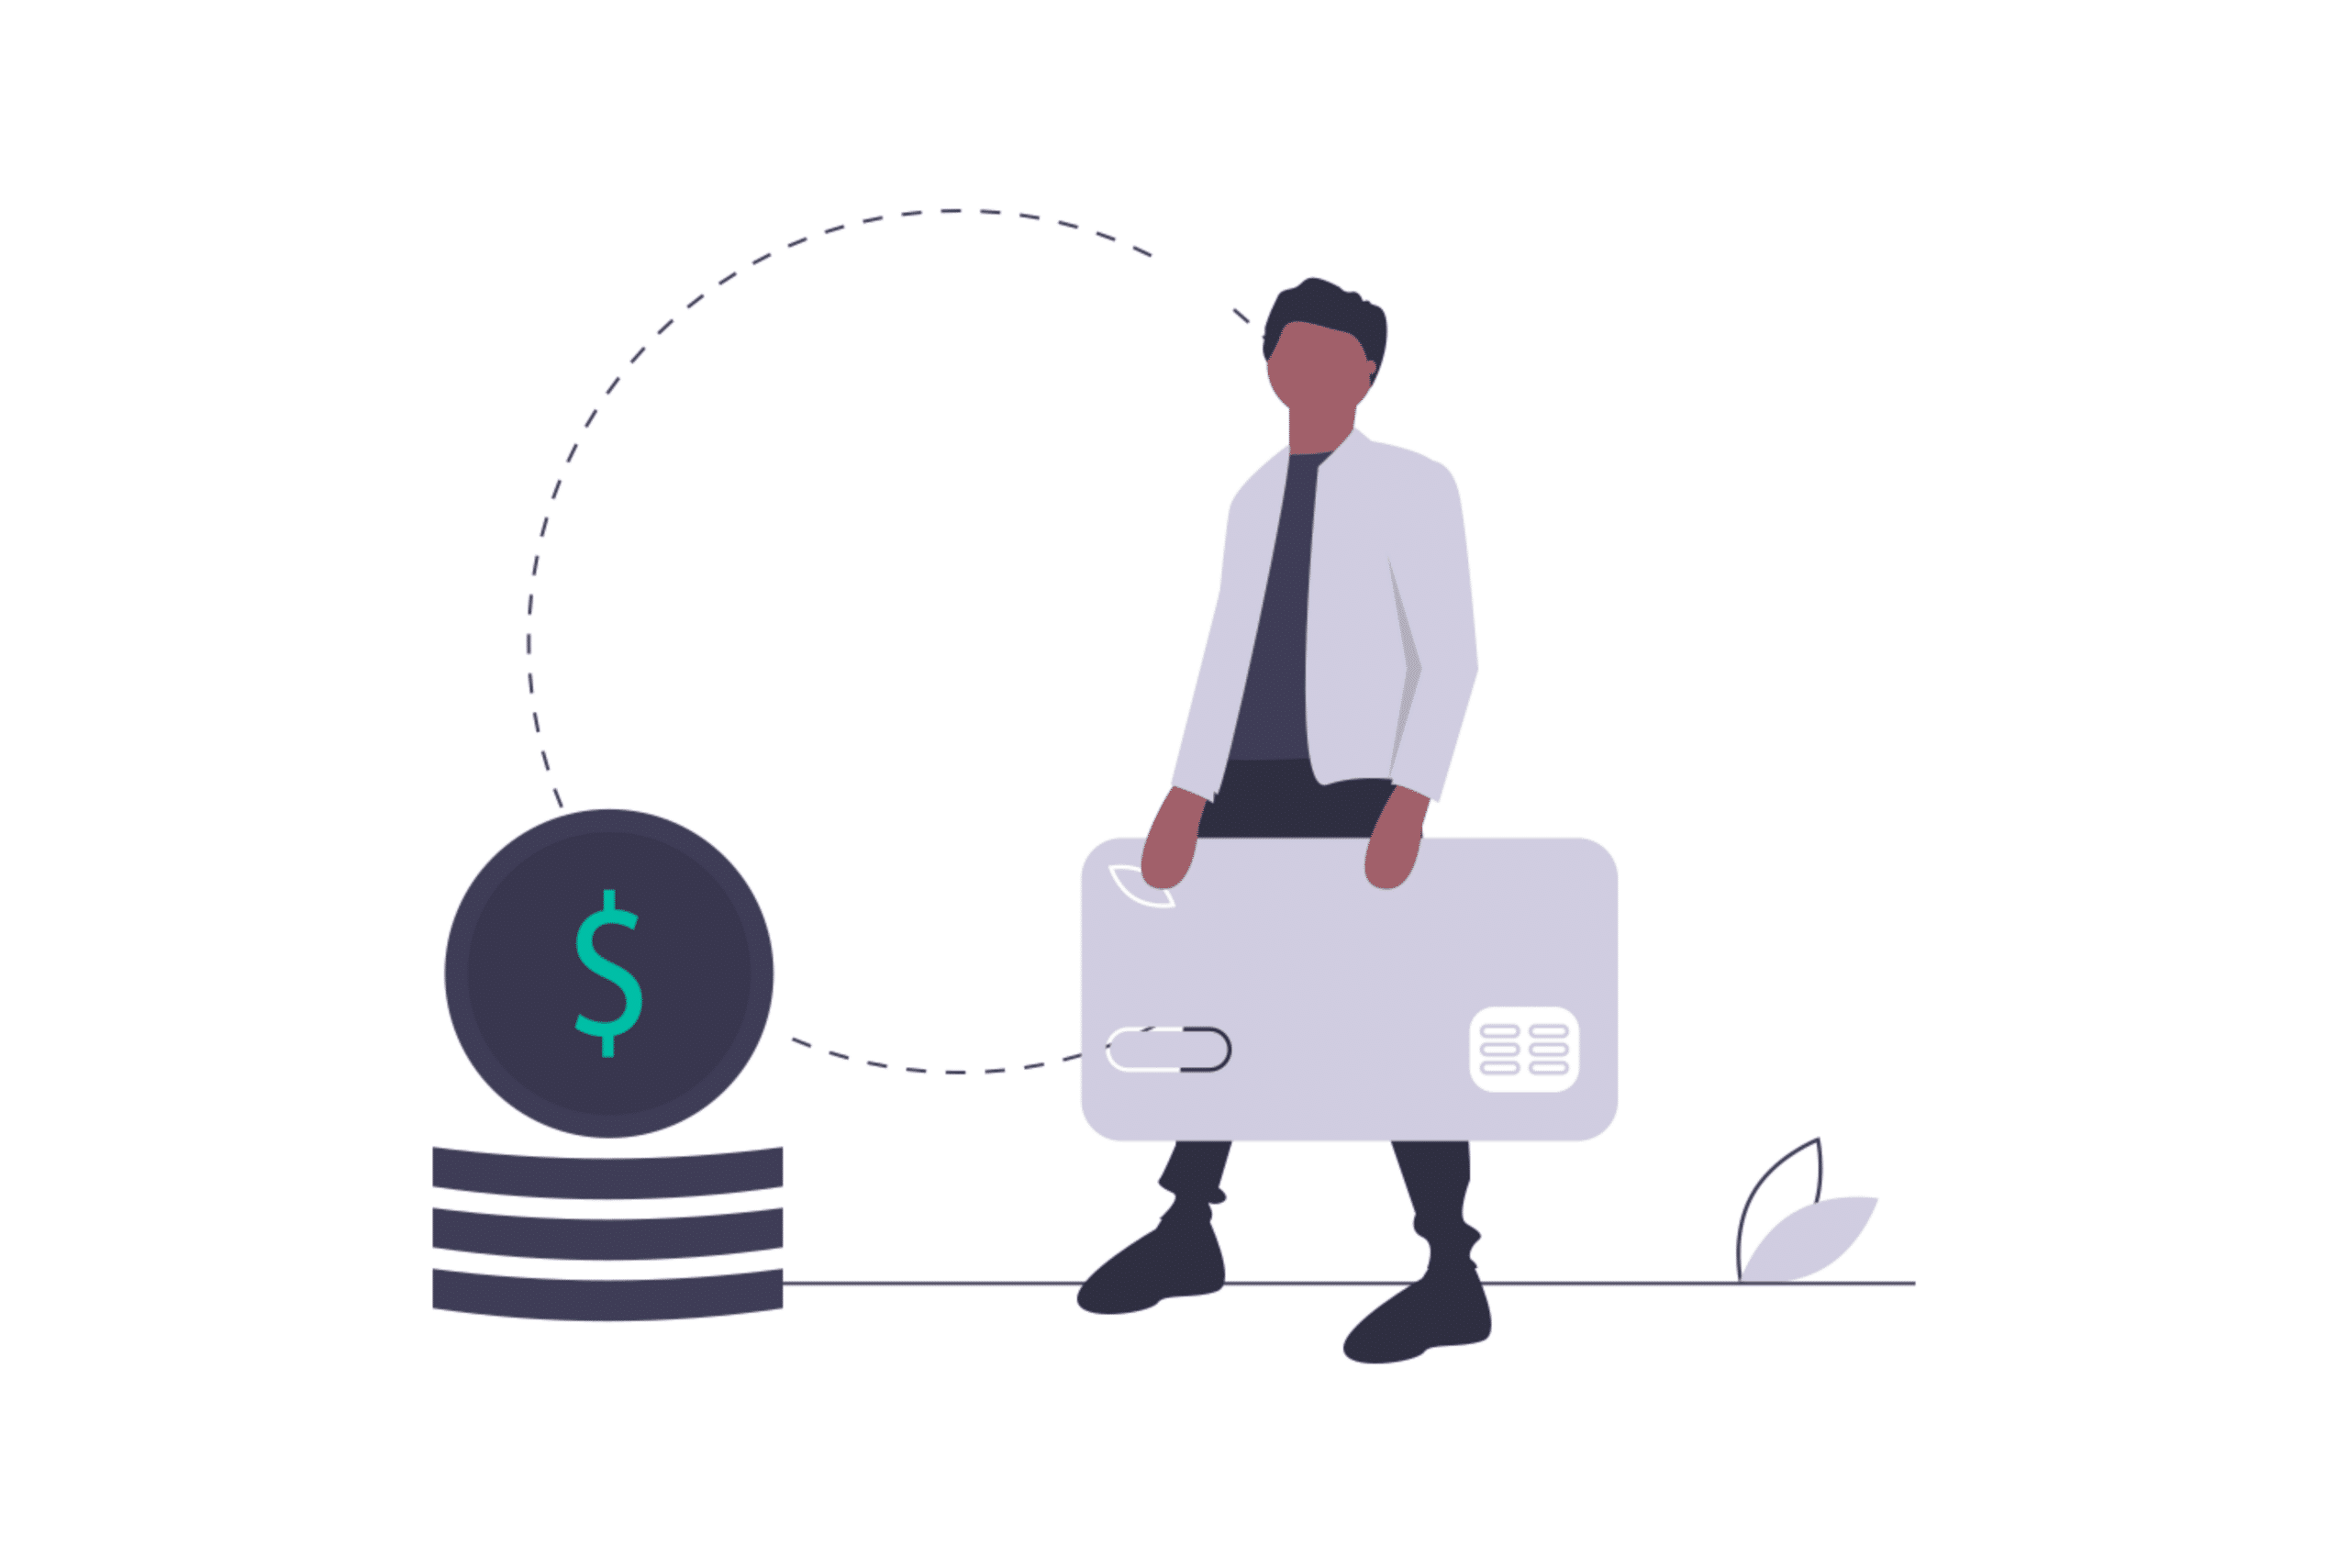 illustration about a tenant holding his money and refusing to pay